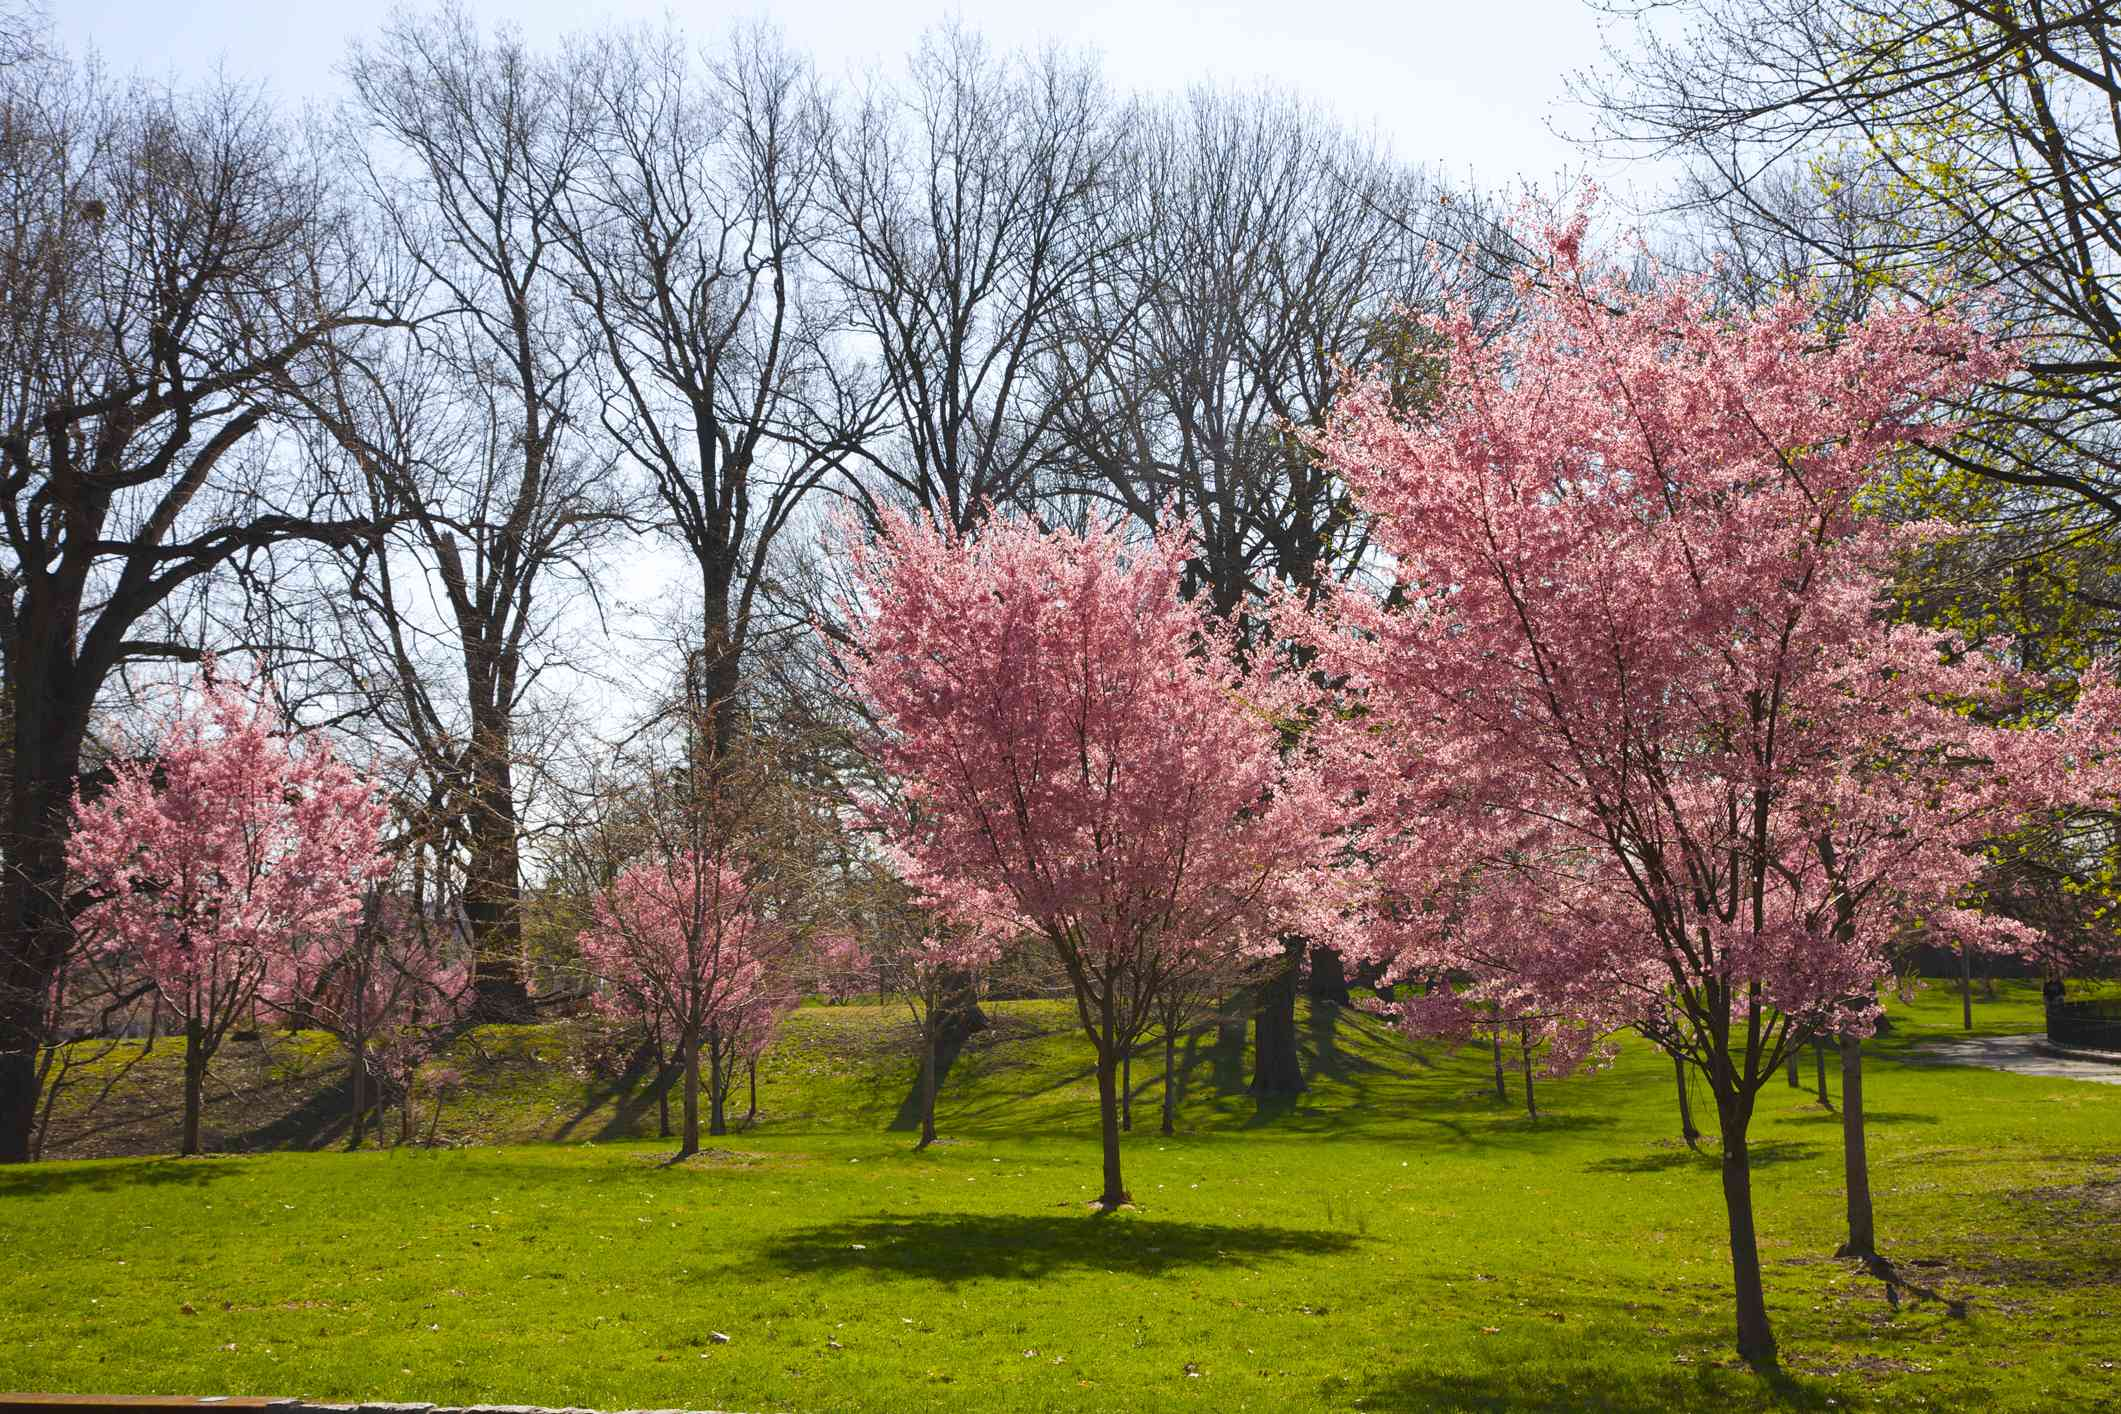 A group of 7 small cherry blossom trees in full pink bloom on a green grass lawn with tall trees with no leaves in the background at Branch Brook Park